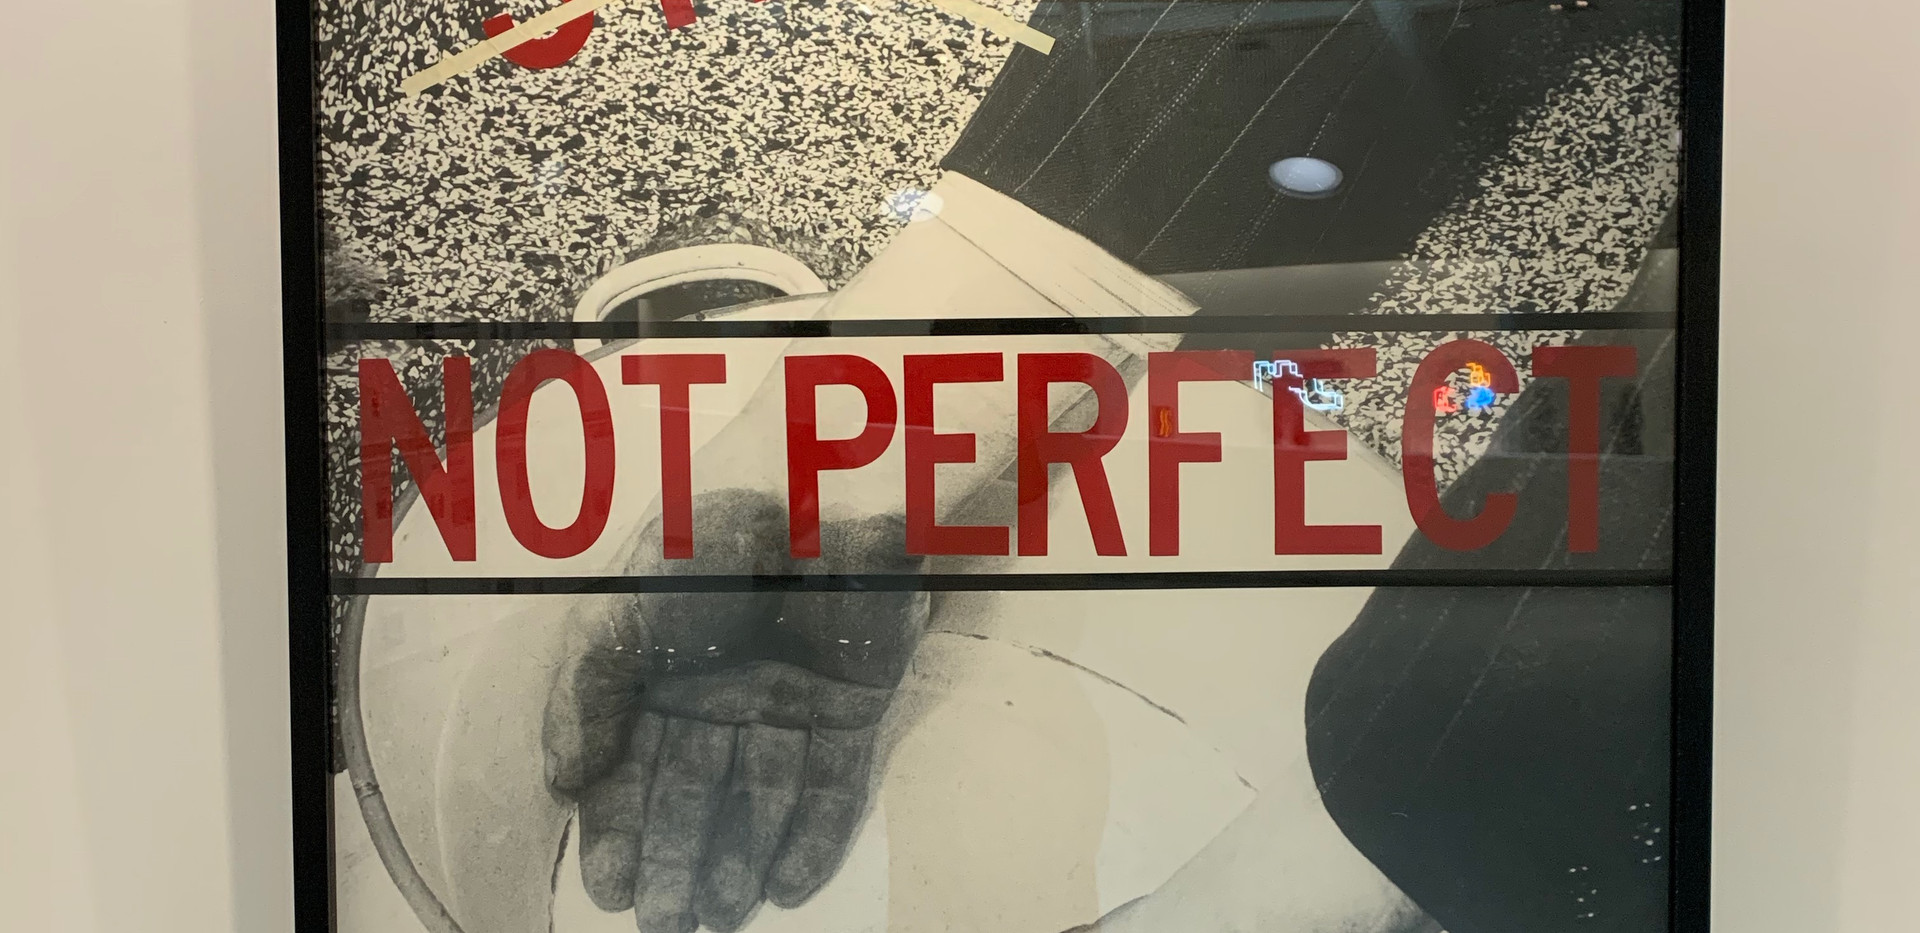 Barbara Kruger, Untitled (Not Perfect), 1980